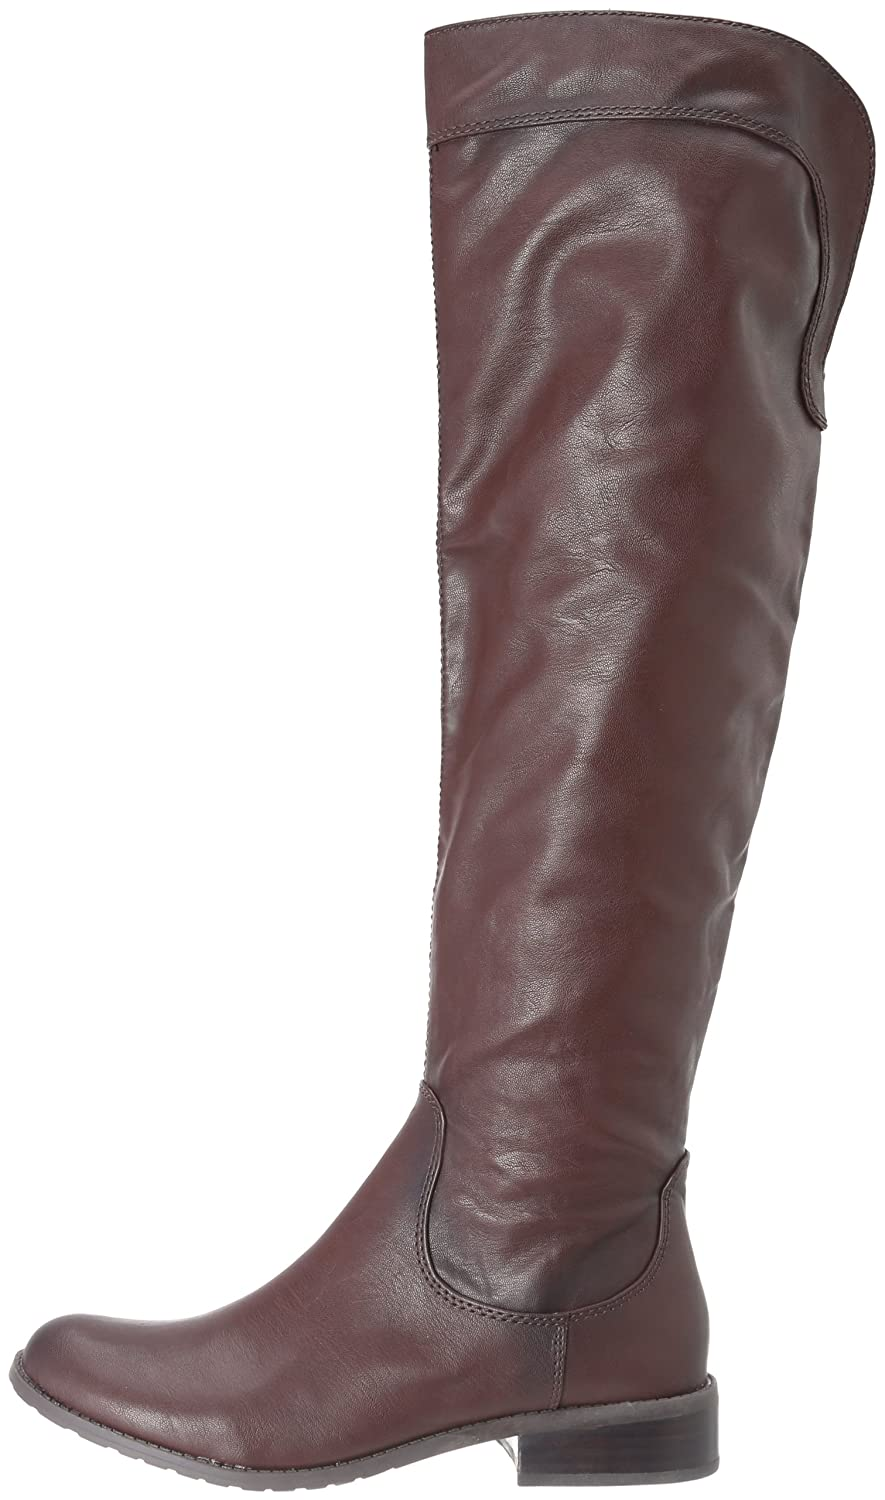 Fergie Womens Metro Knee High Engineer Boot Brown Synthetic Size 8.5